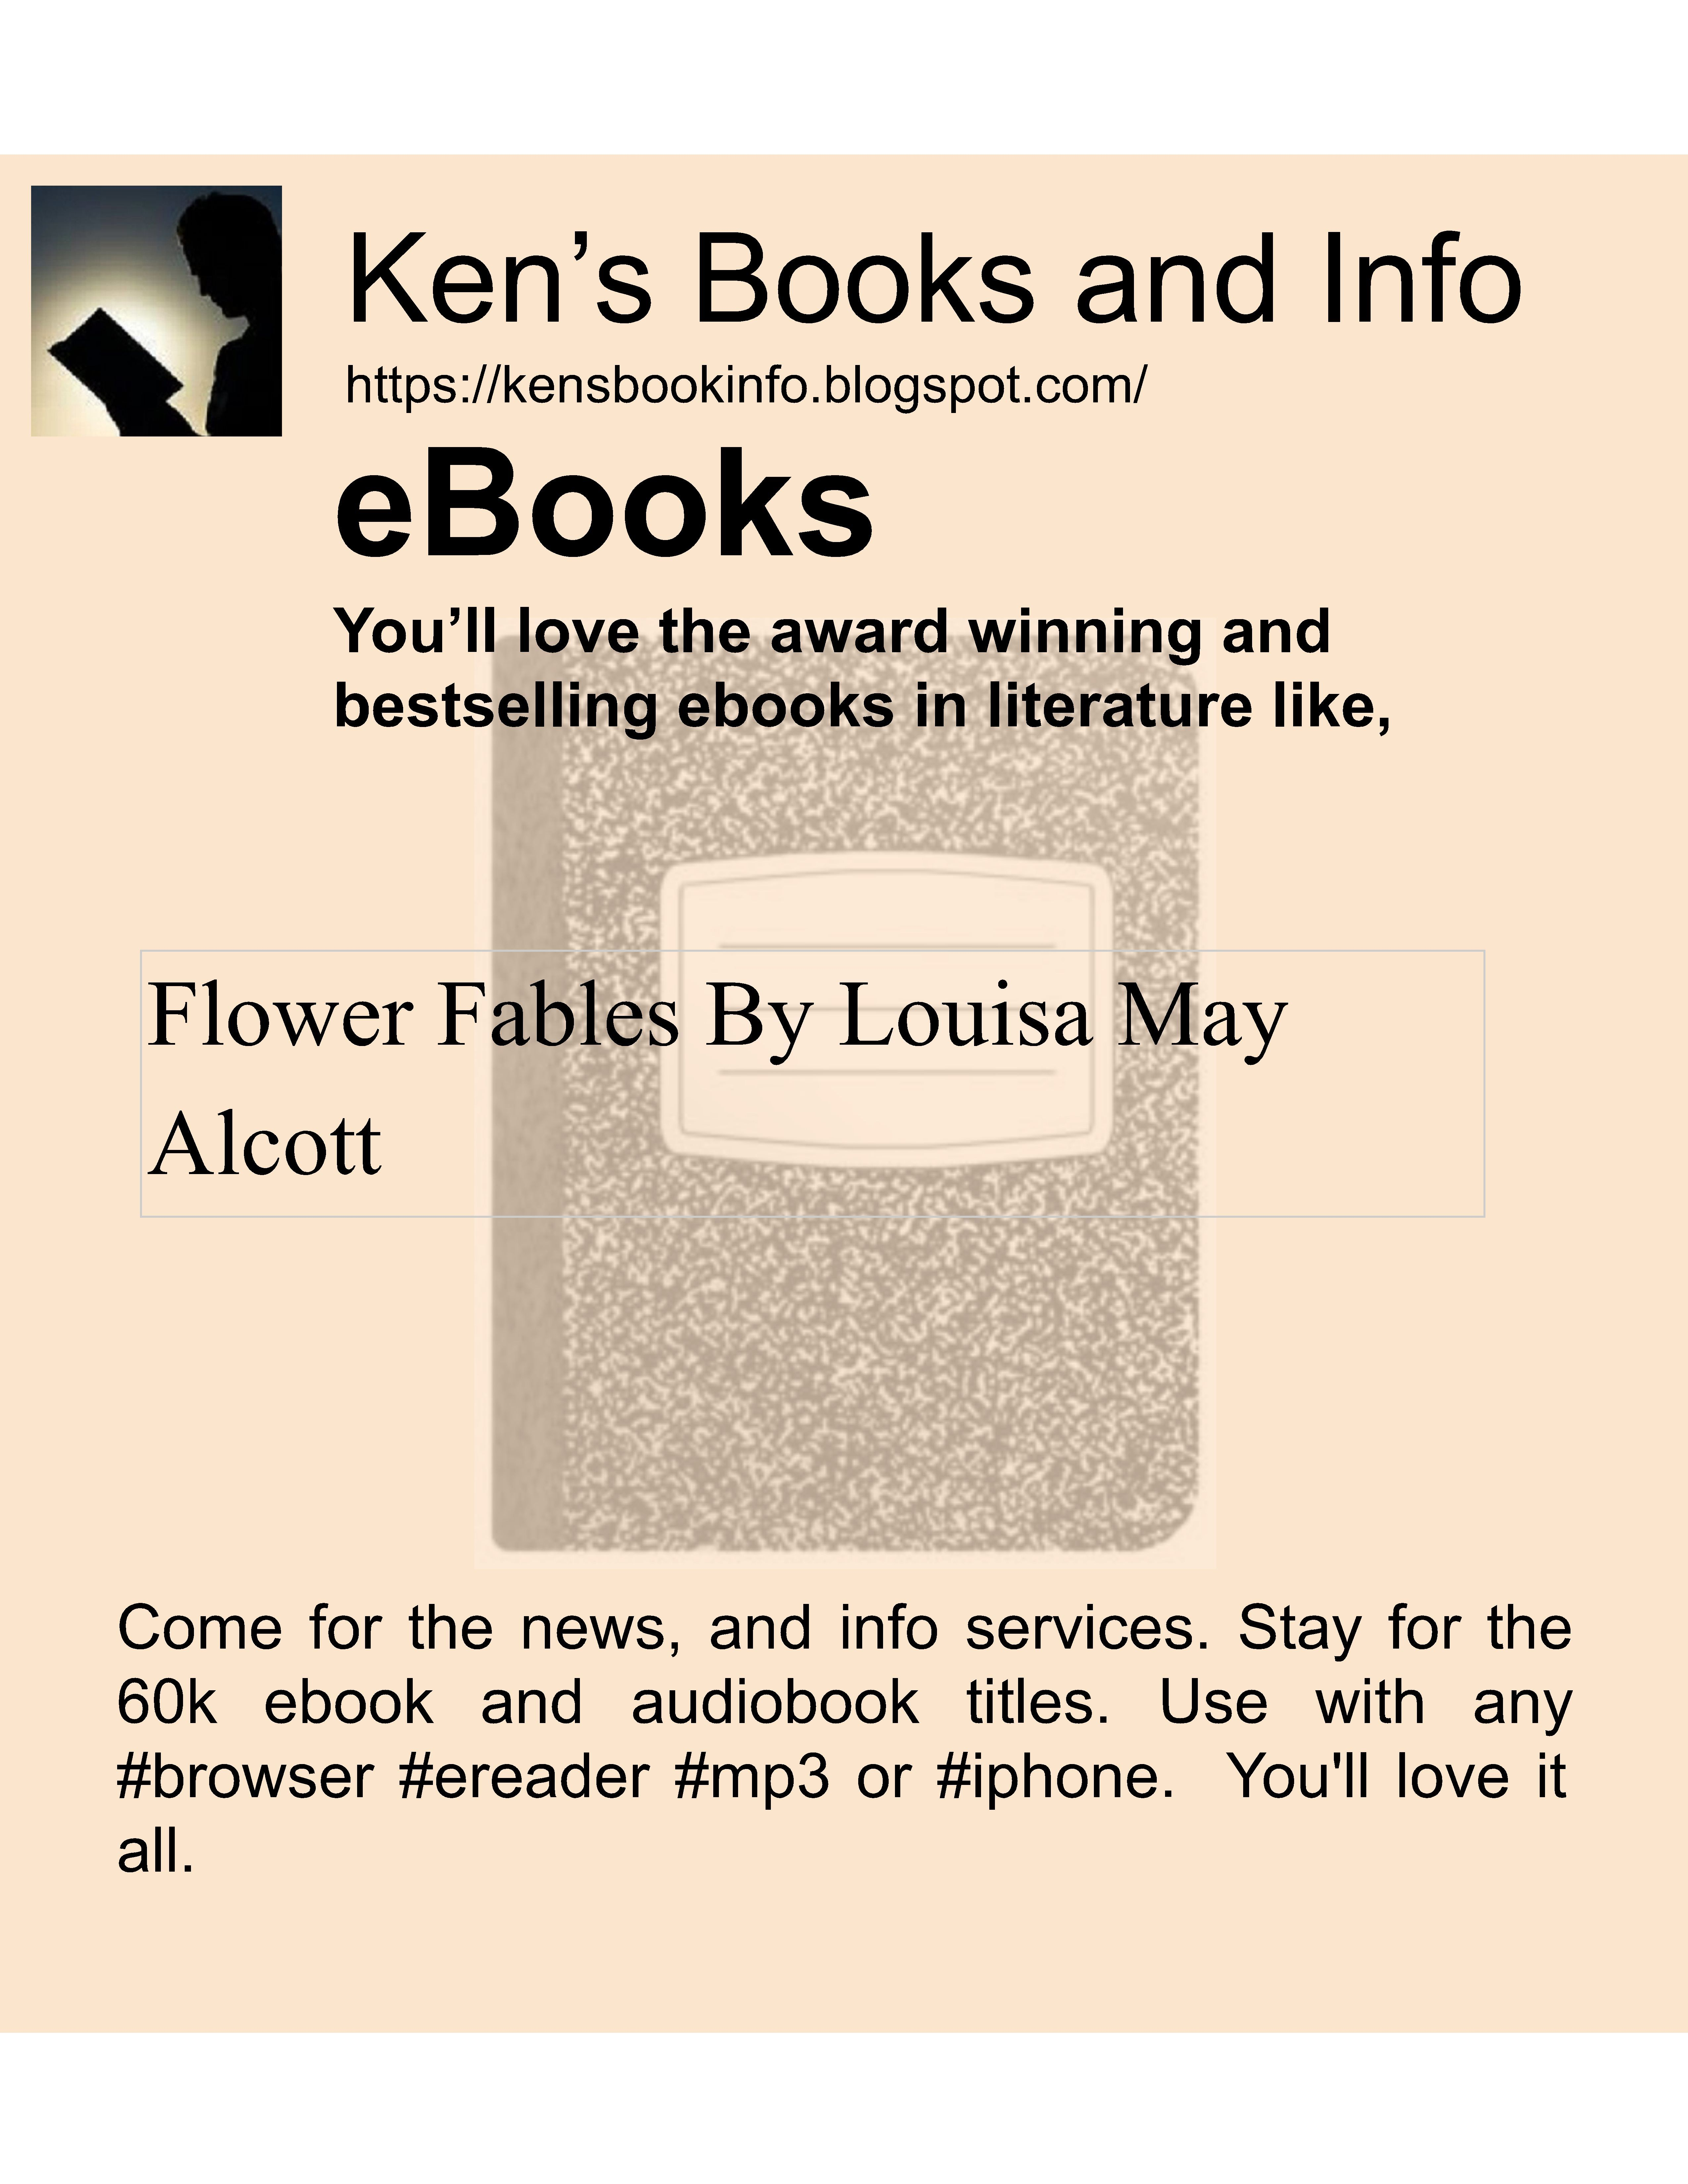 #Literature from top #authors like  Flower Fables By Louisa May Alcott  Come for the #news #info #email #online #apps #websites, and #search engine. Stay for the 60k #ebook and #audiobook titles. You'll #love it all.